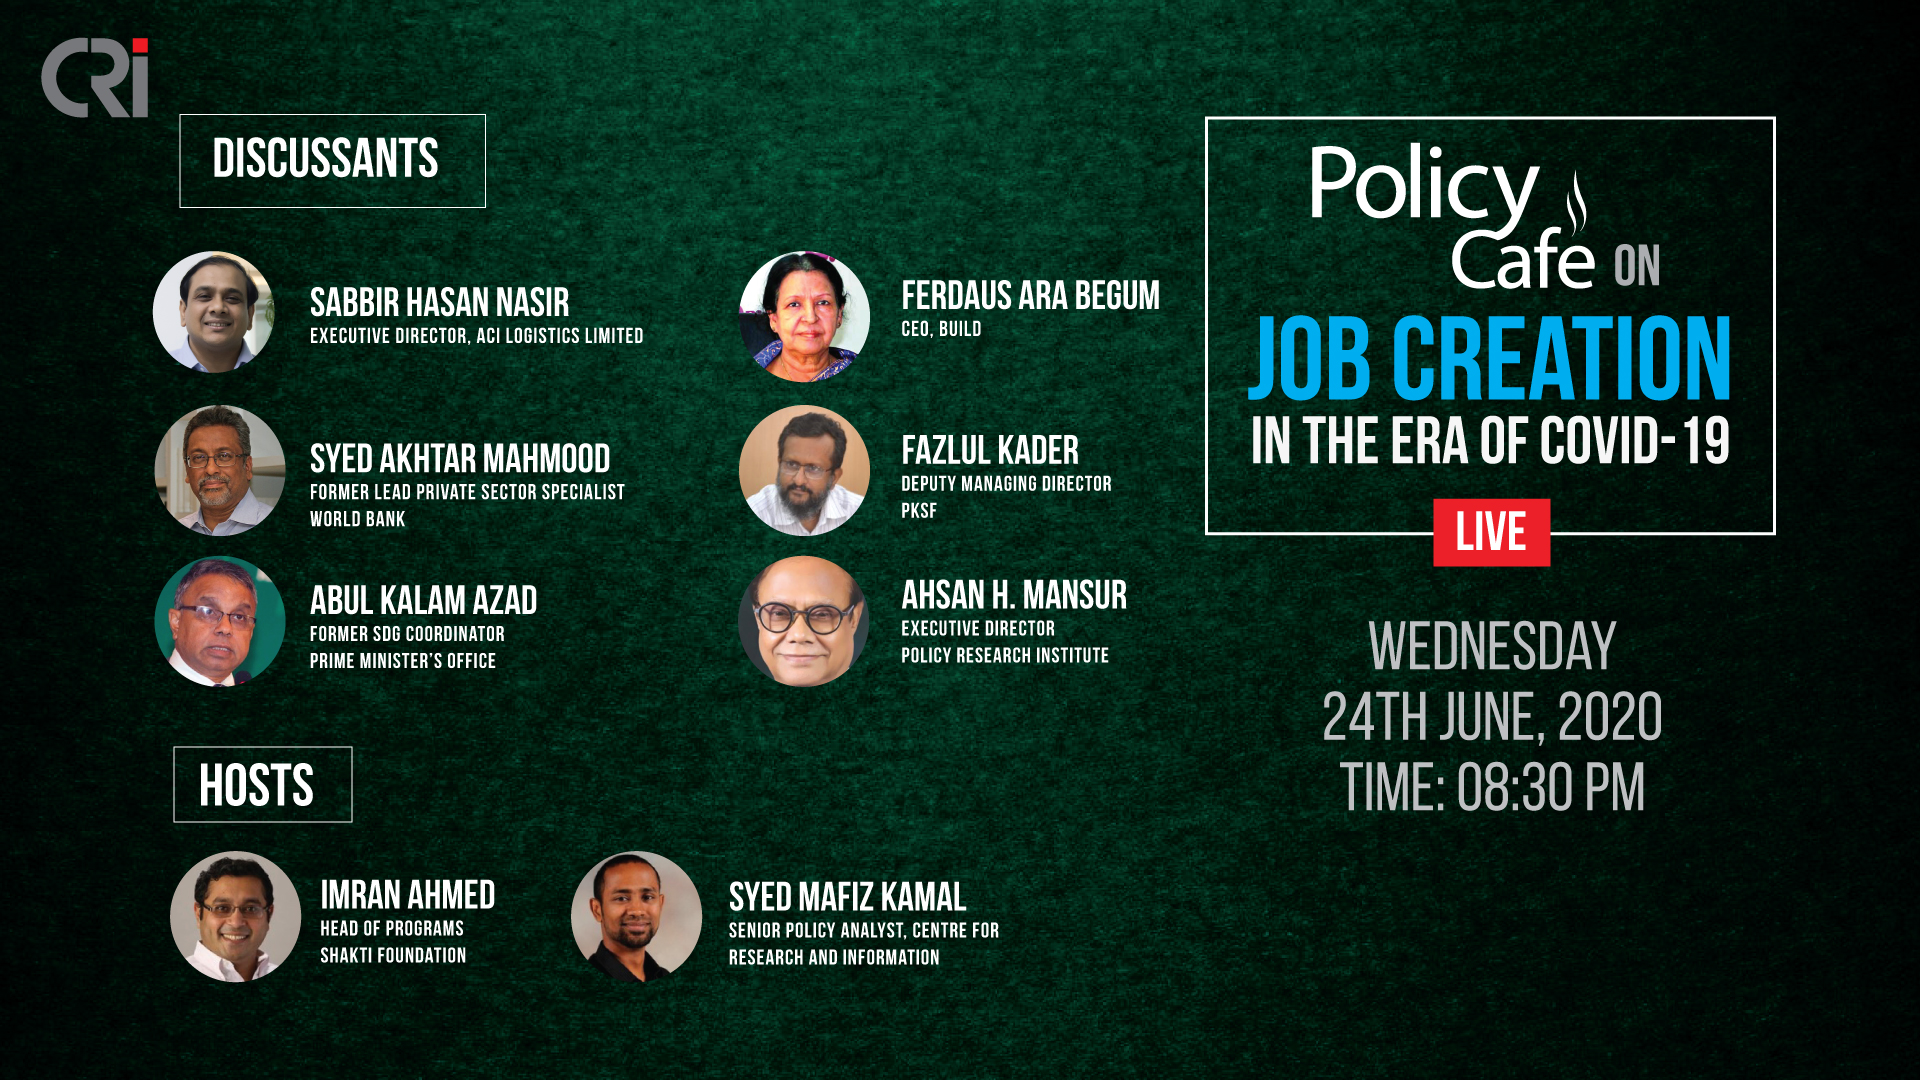 Policy Café on Job Creation in the Era of COVID-19